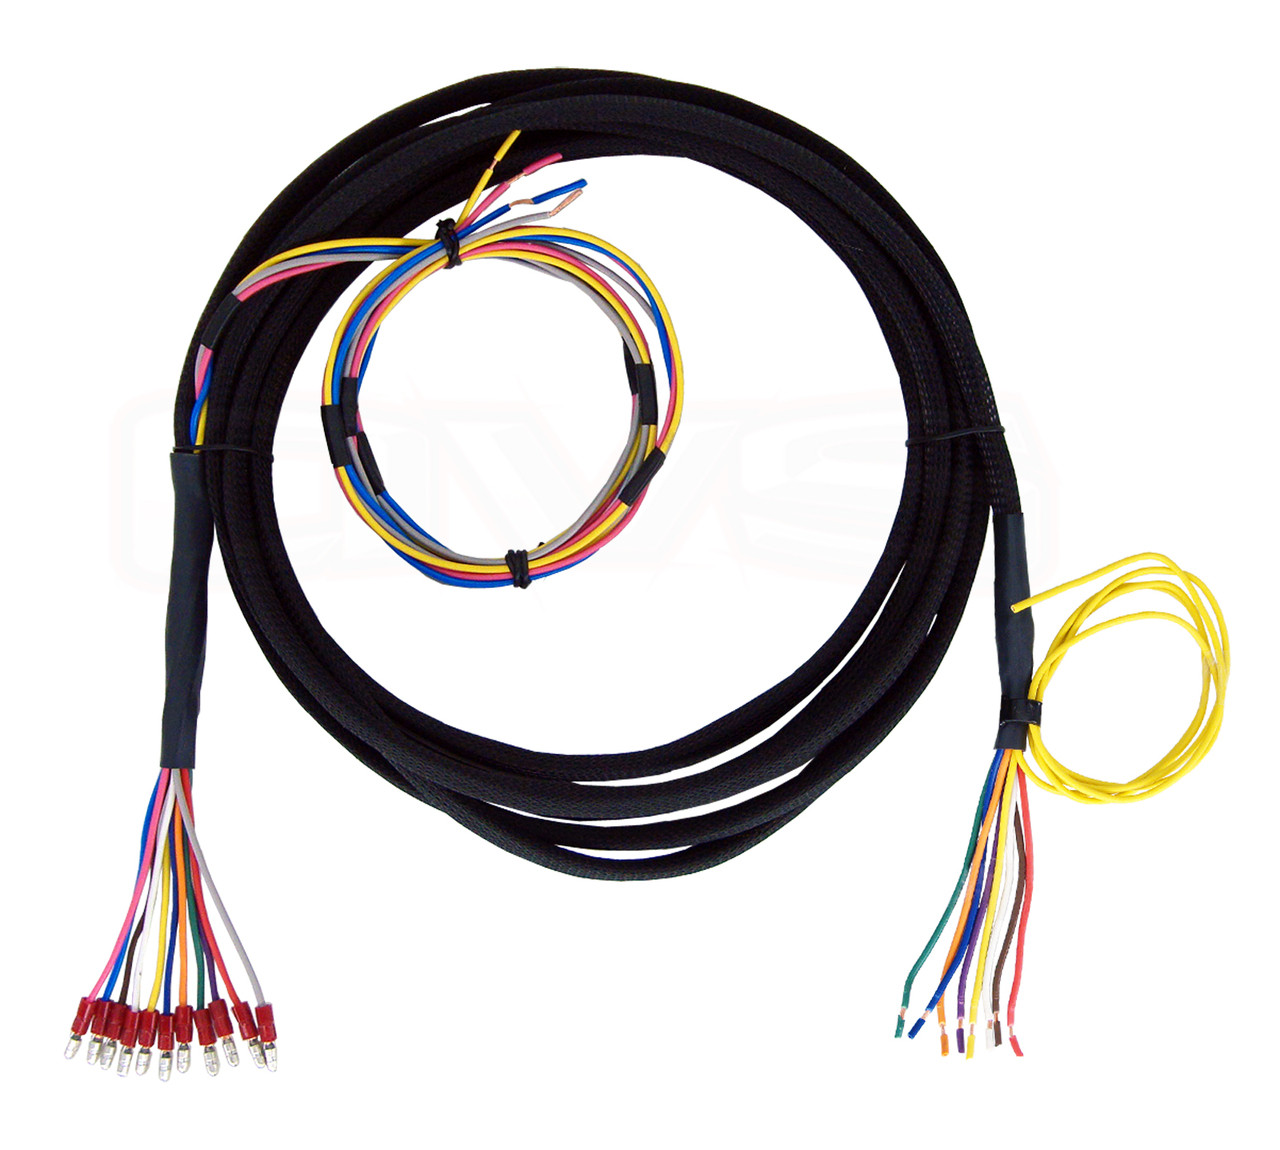 avs valve wiring harness 10 15 20 universal to avs 7 switch box avs [ 1280 x 1150 Pixel ]